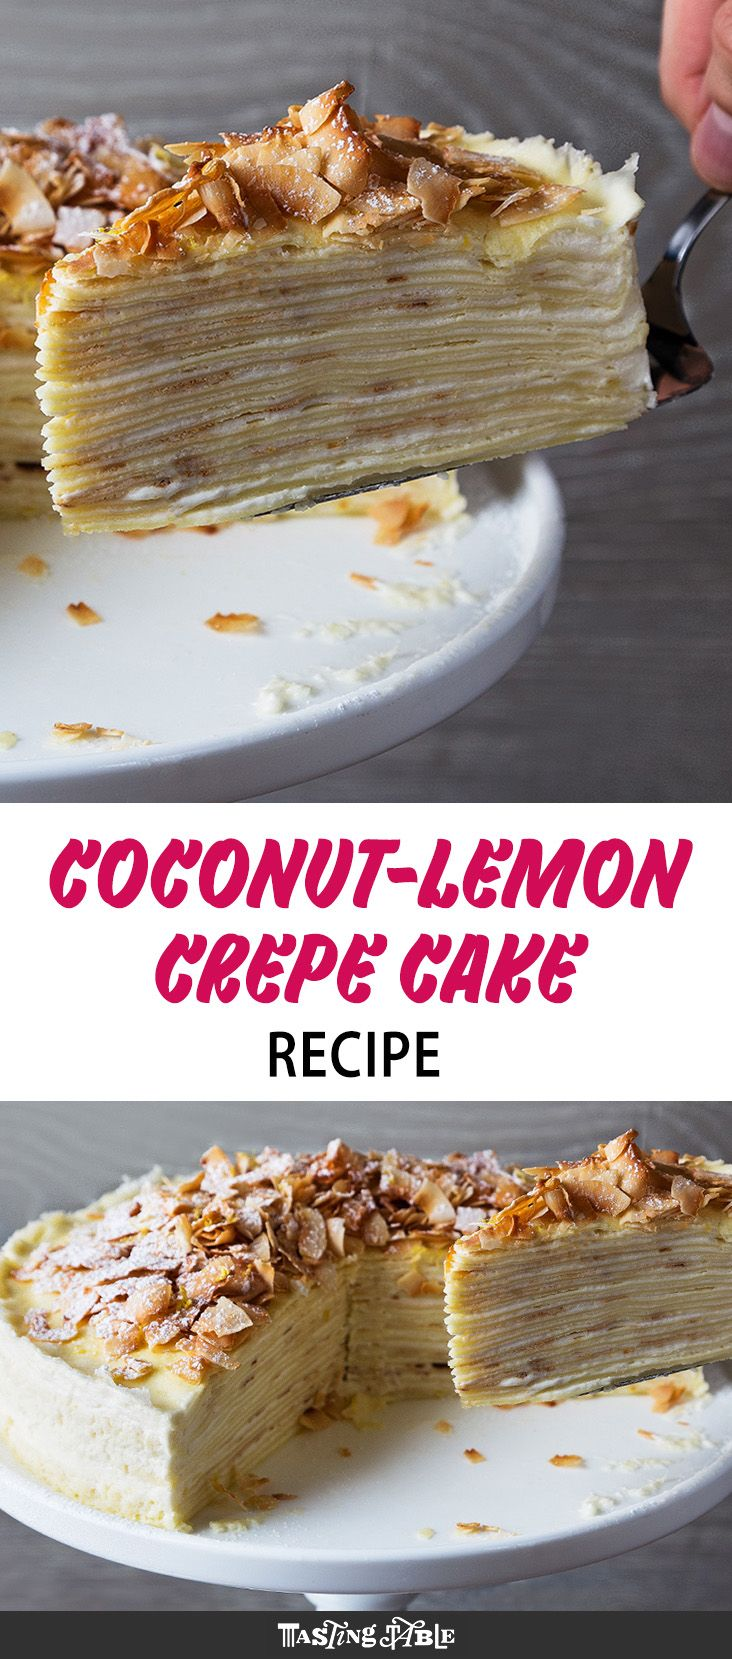 Paper-thin crepes are layered with a rich frosting made of whipped coconut cream, mascarpone and lemon zest for a bright and stunning spring cake.